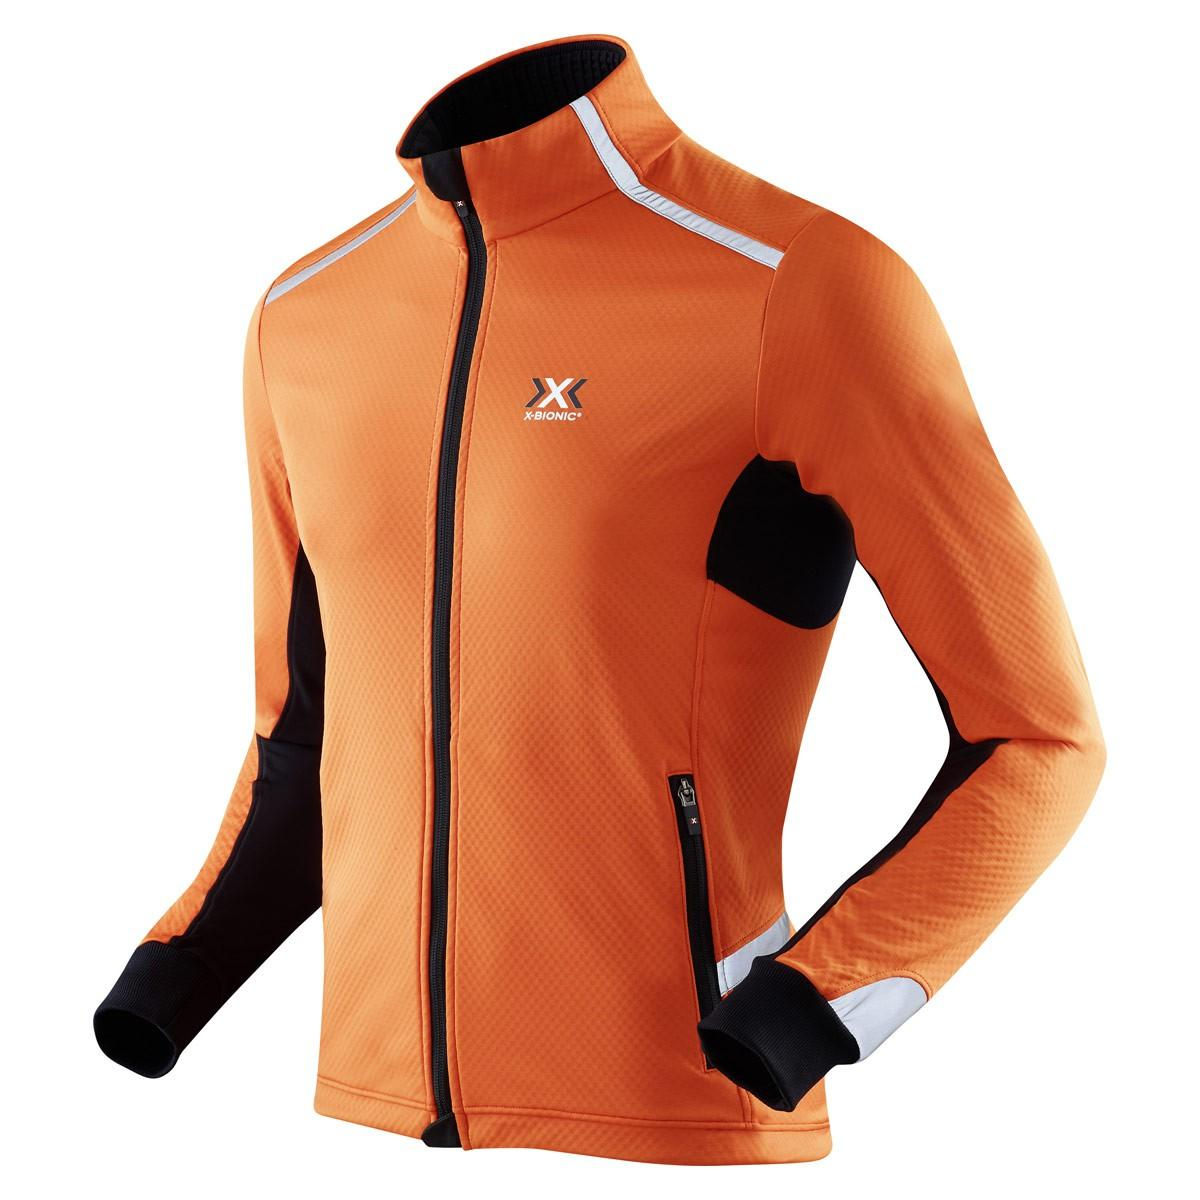 X-Bionic Winter Spherewind Light - von vorne (c) X-Bionic